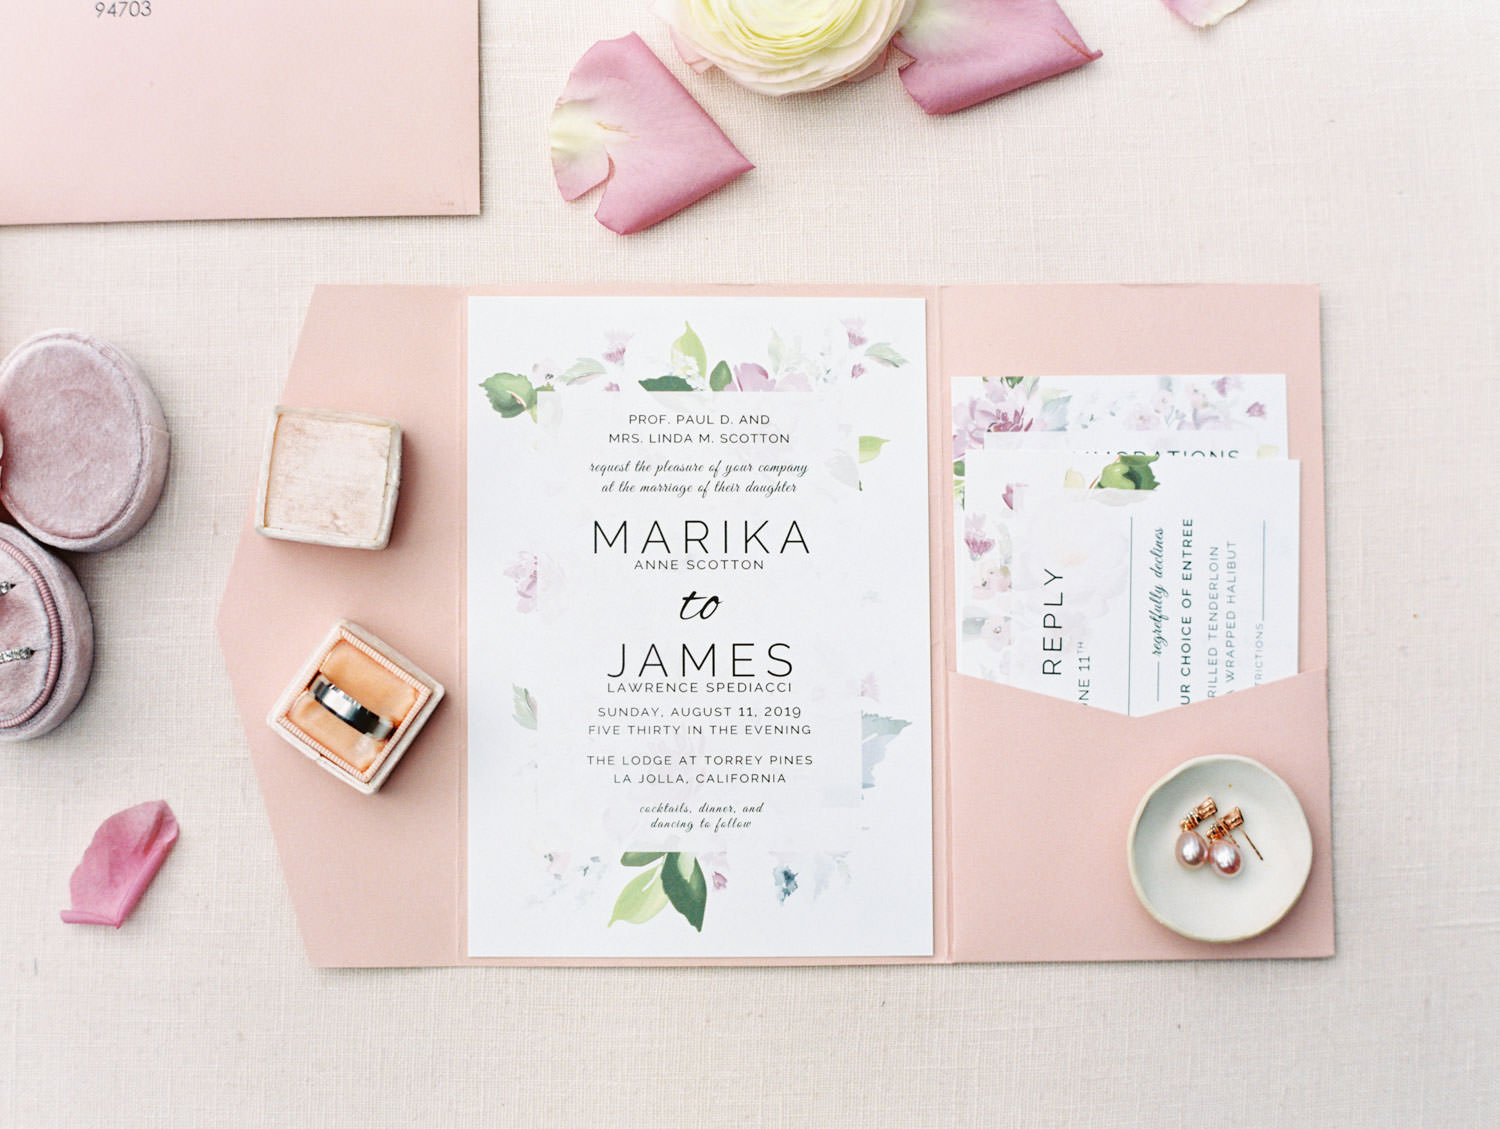 White wedding invitation with green and lavender floral border in pink envelope with pocket for detail cards, film photography by Cavin Elizabeth Photography